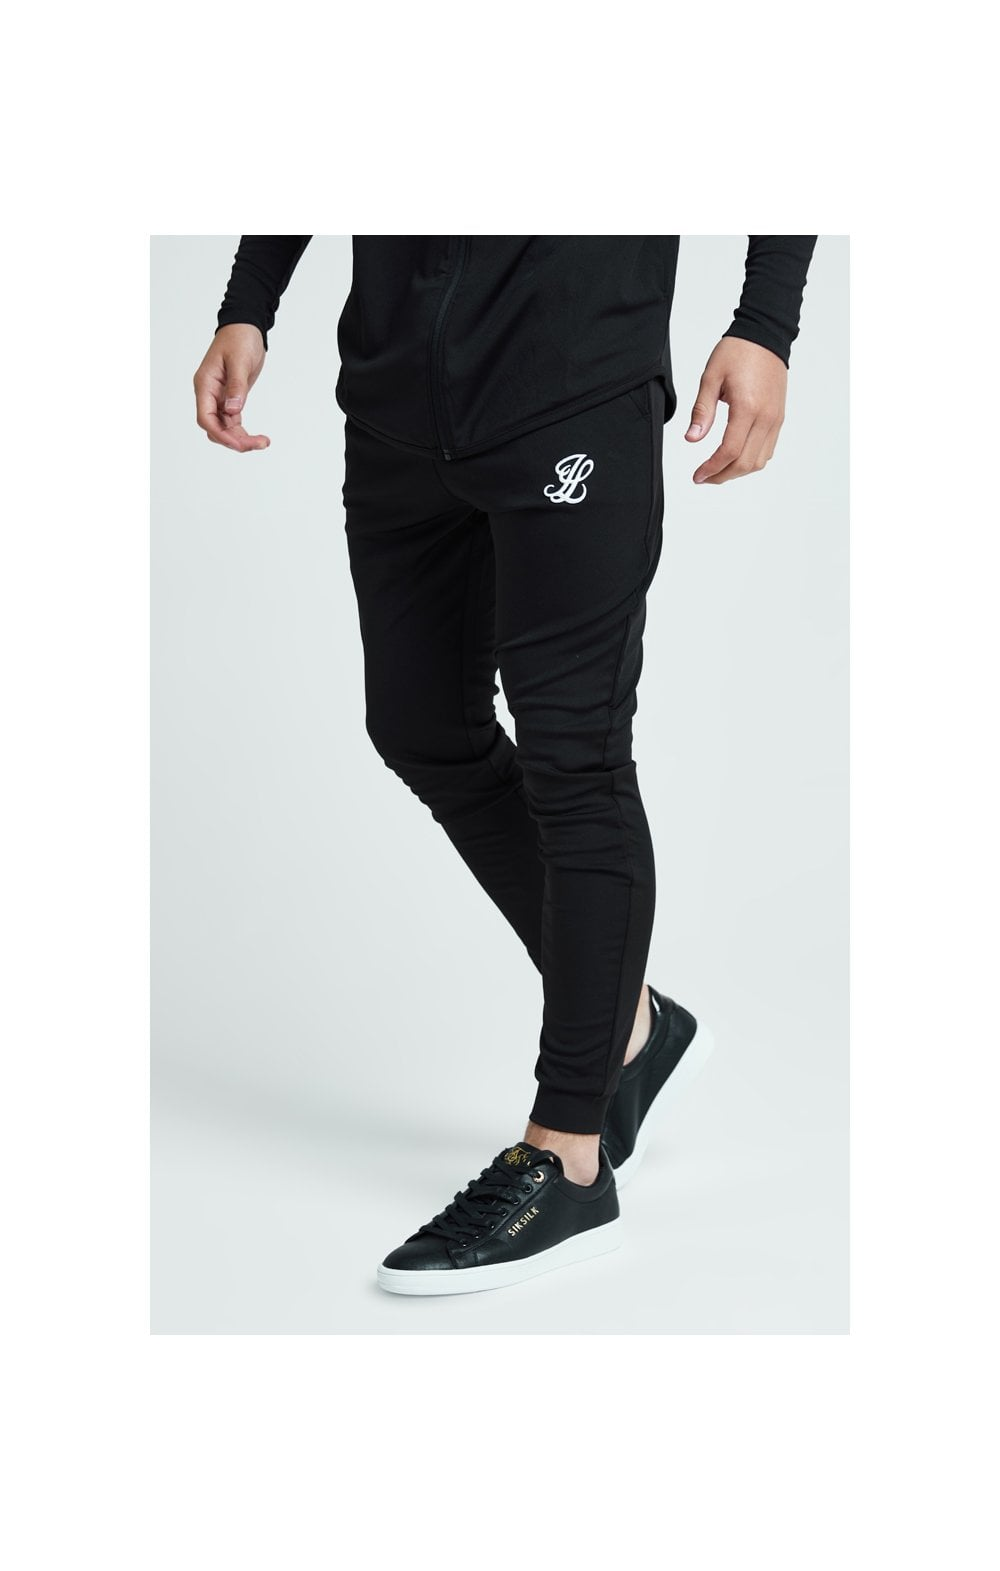 Illusive London Core Fitted Joggers - Black (1)